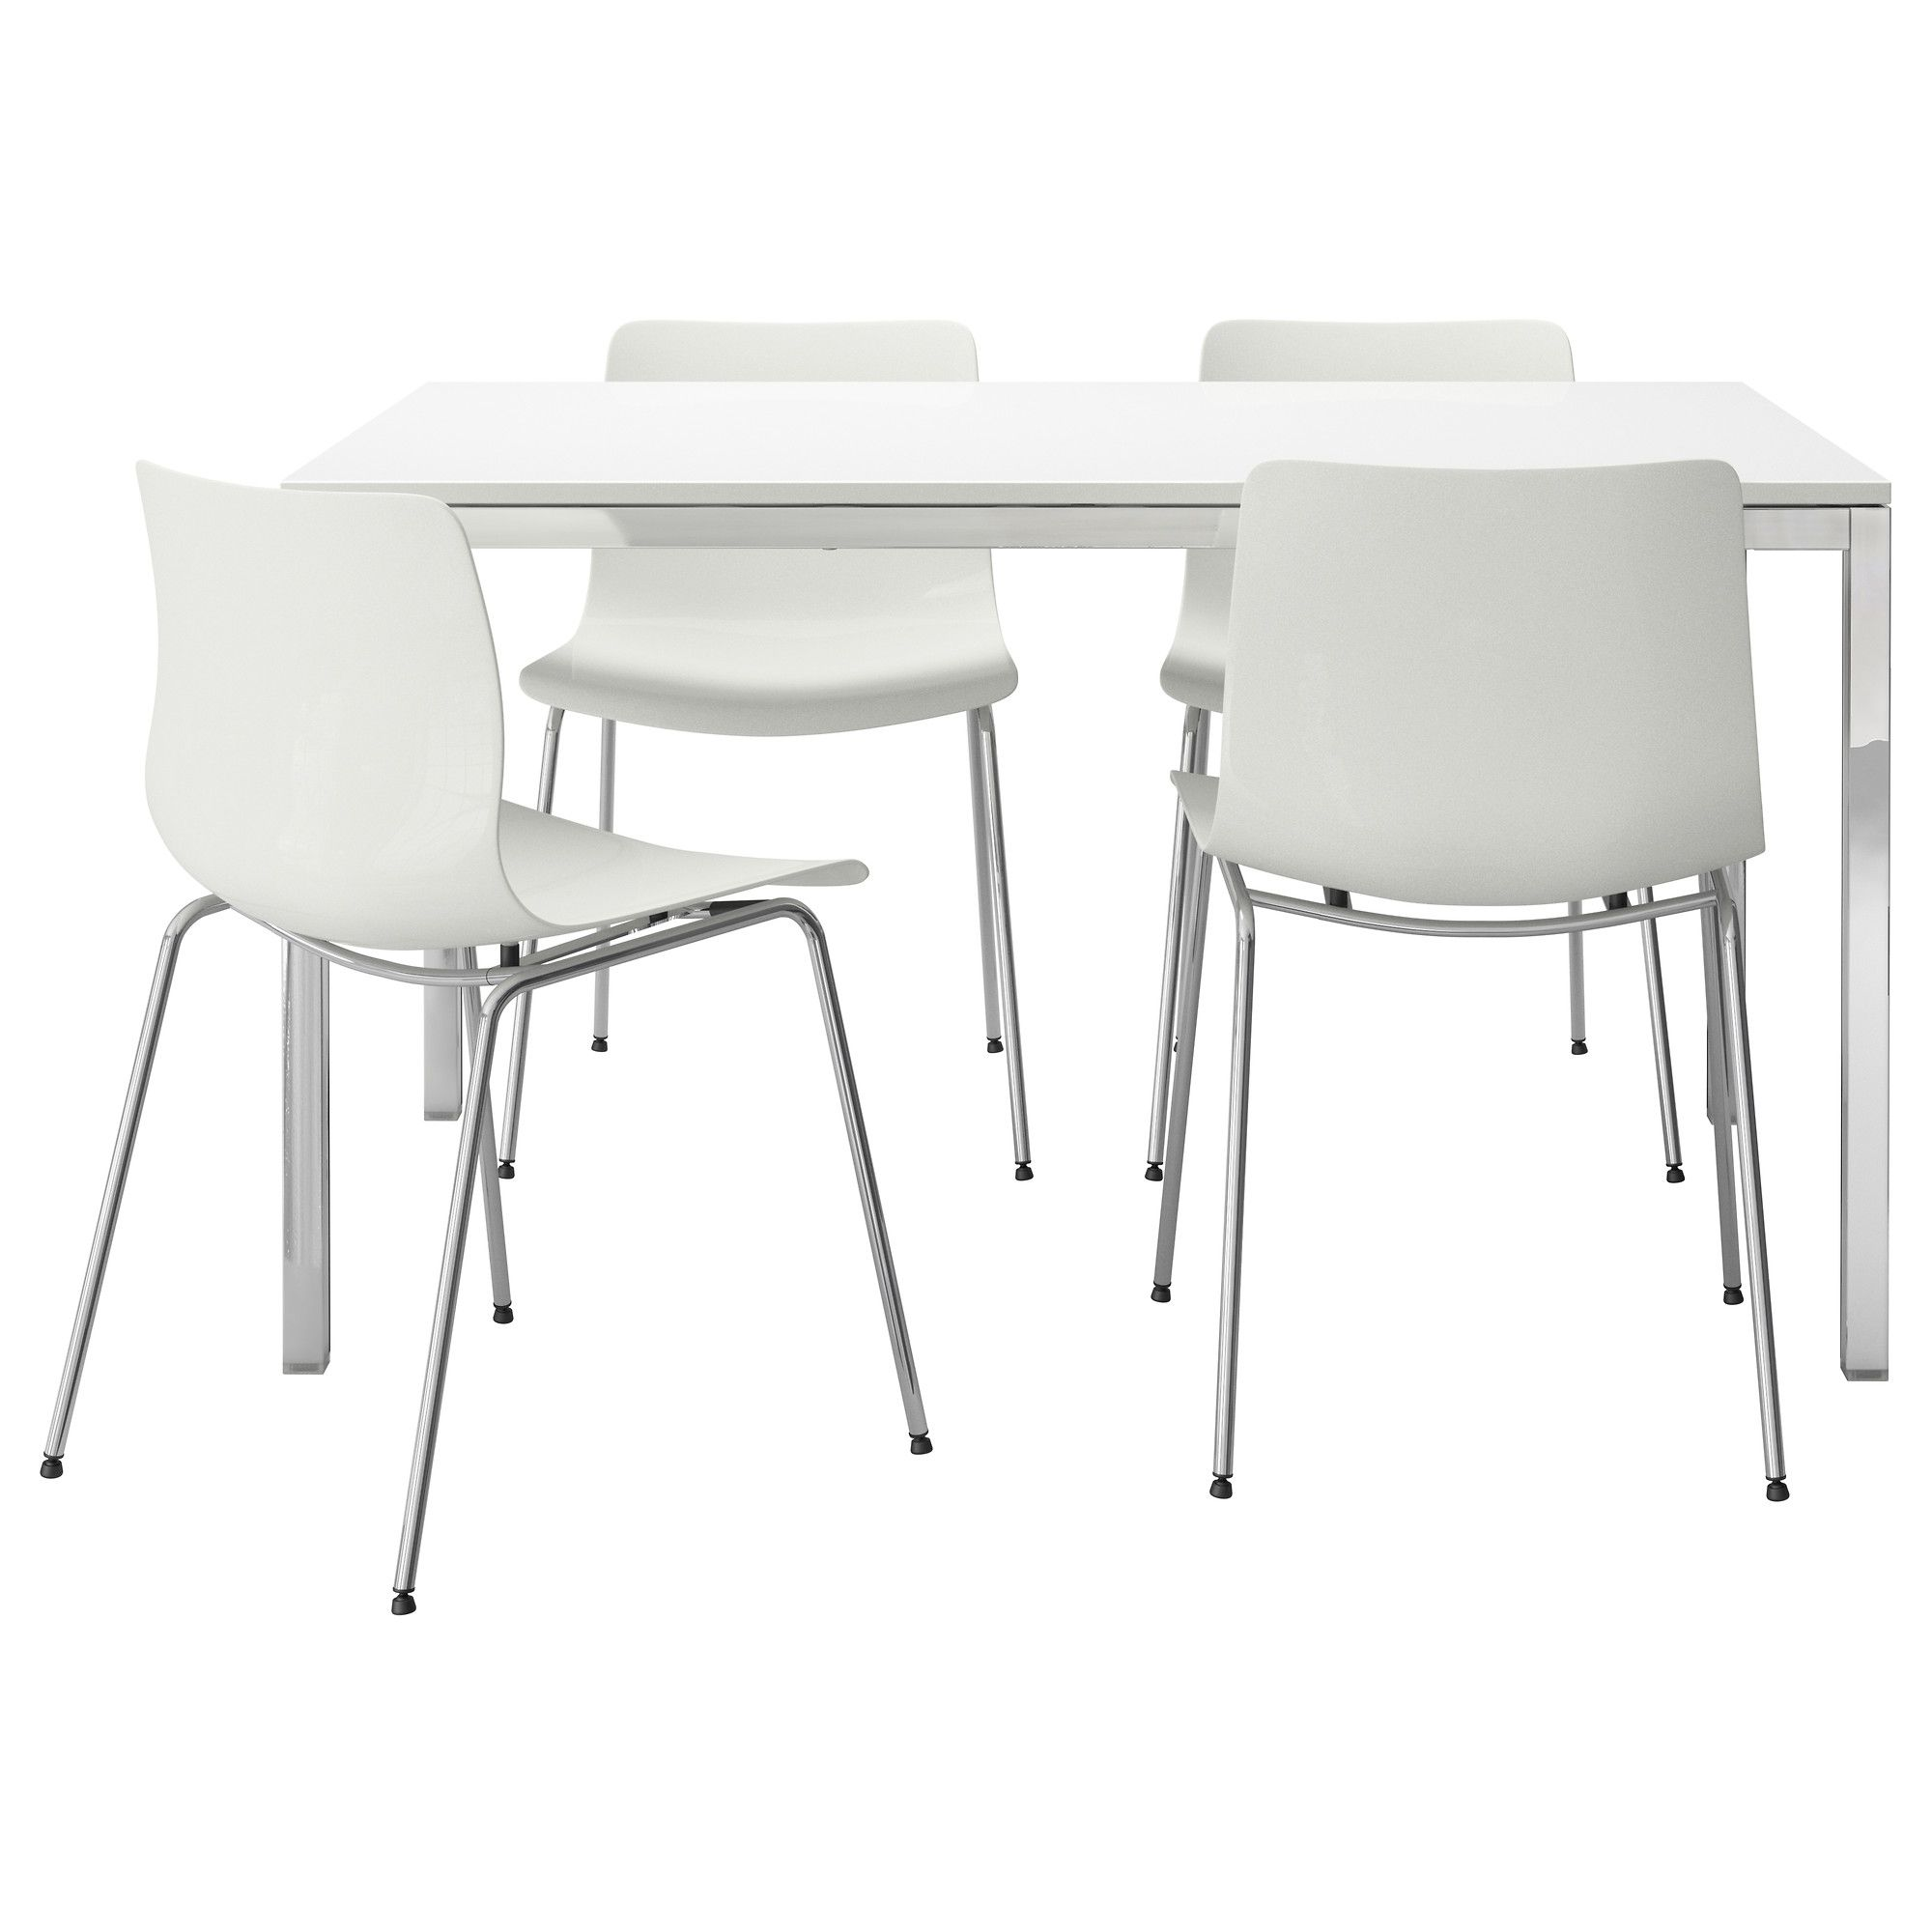 Ikea glass kitchen table - Kitchen Table Torsby Erland Table And 4 Chairs Ikea